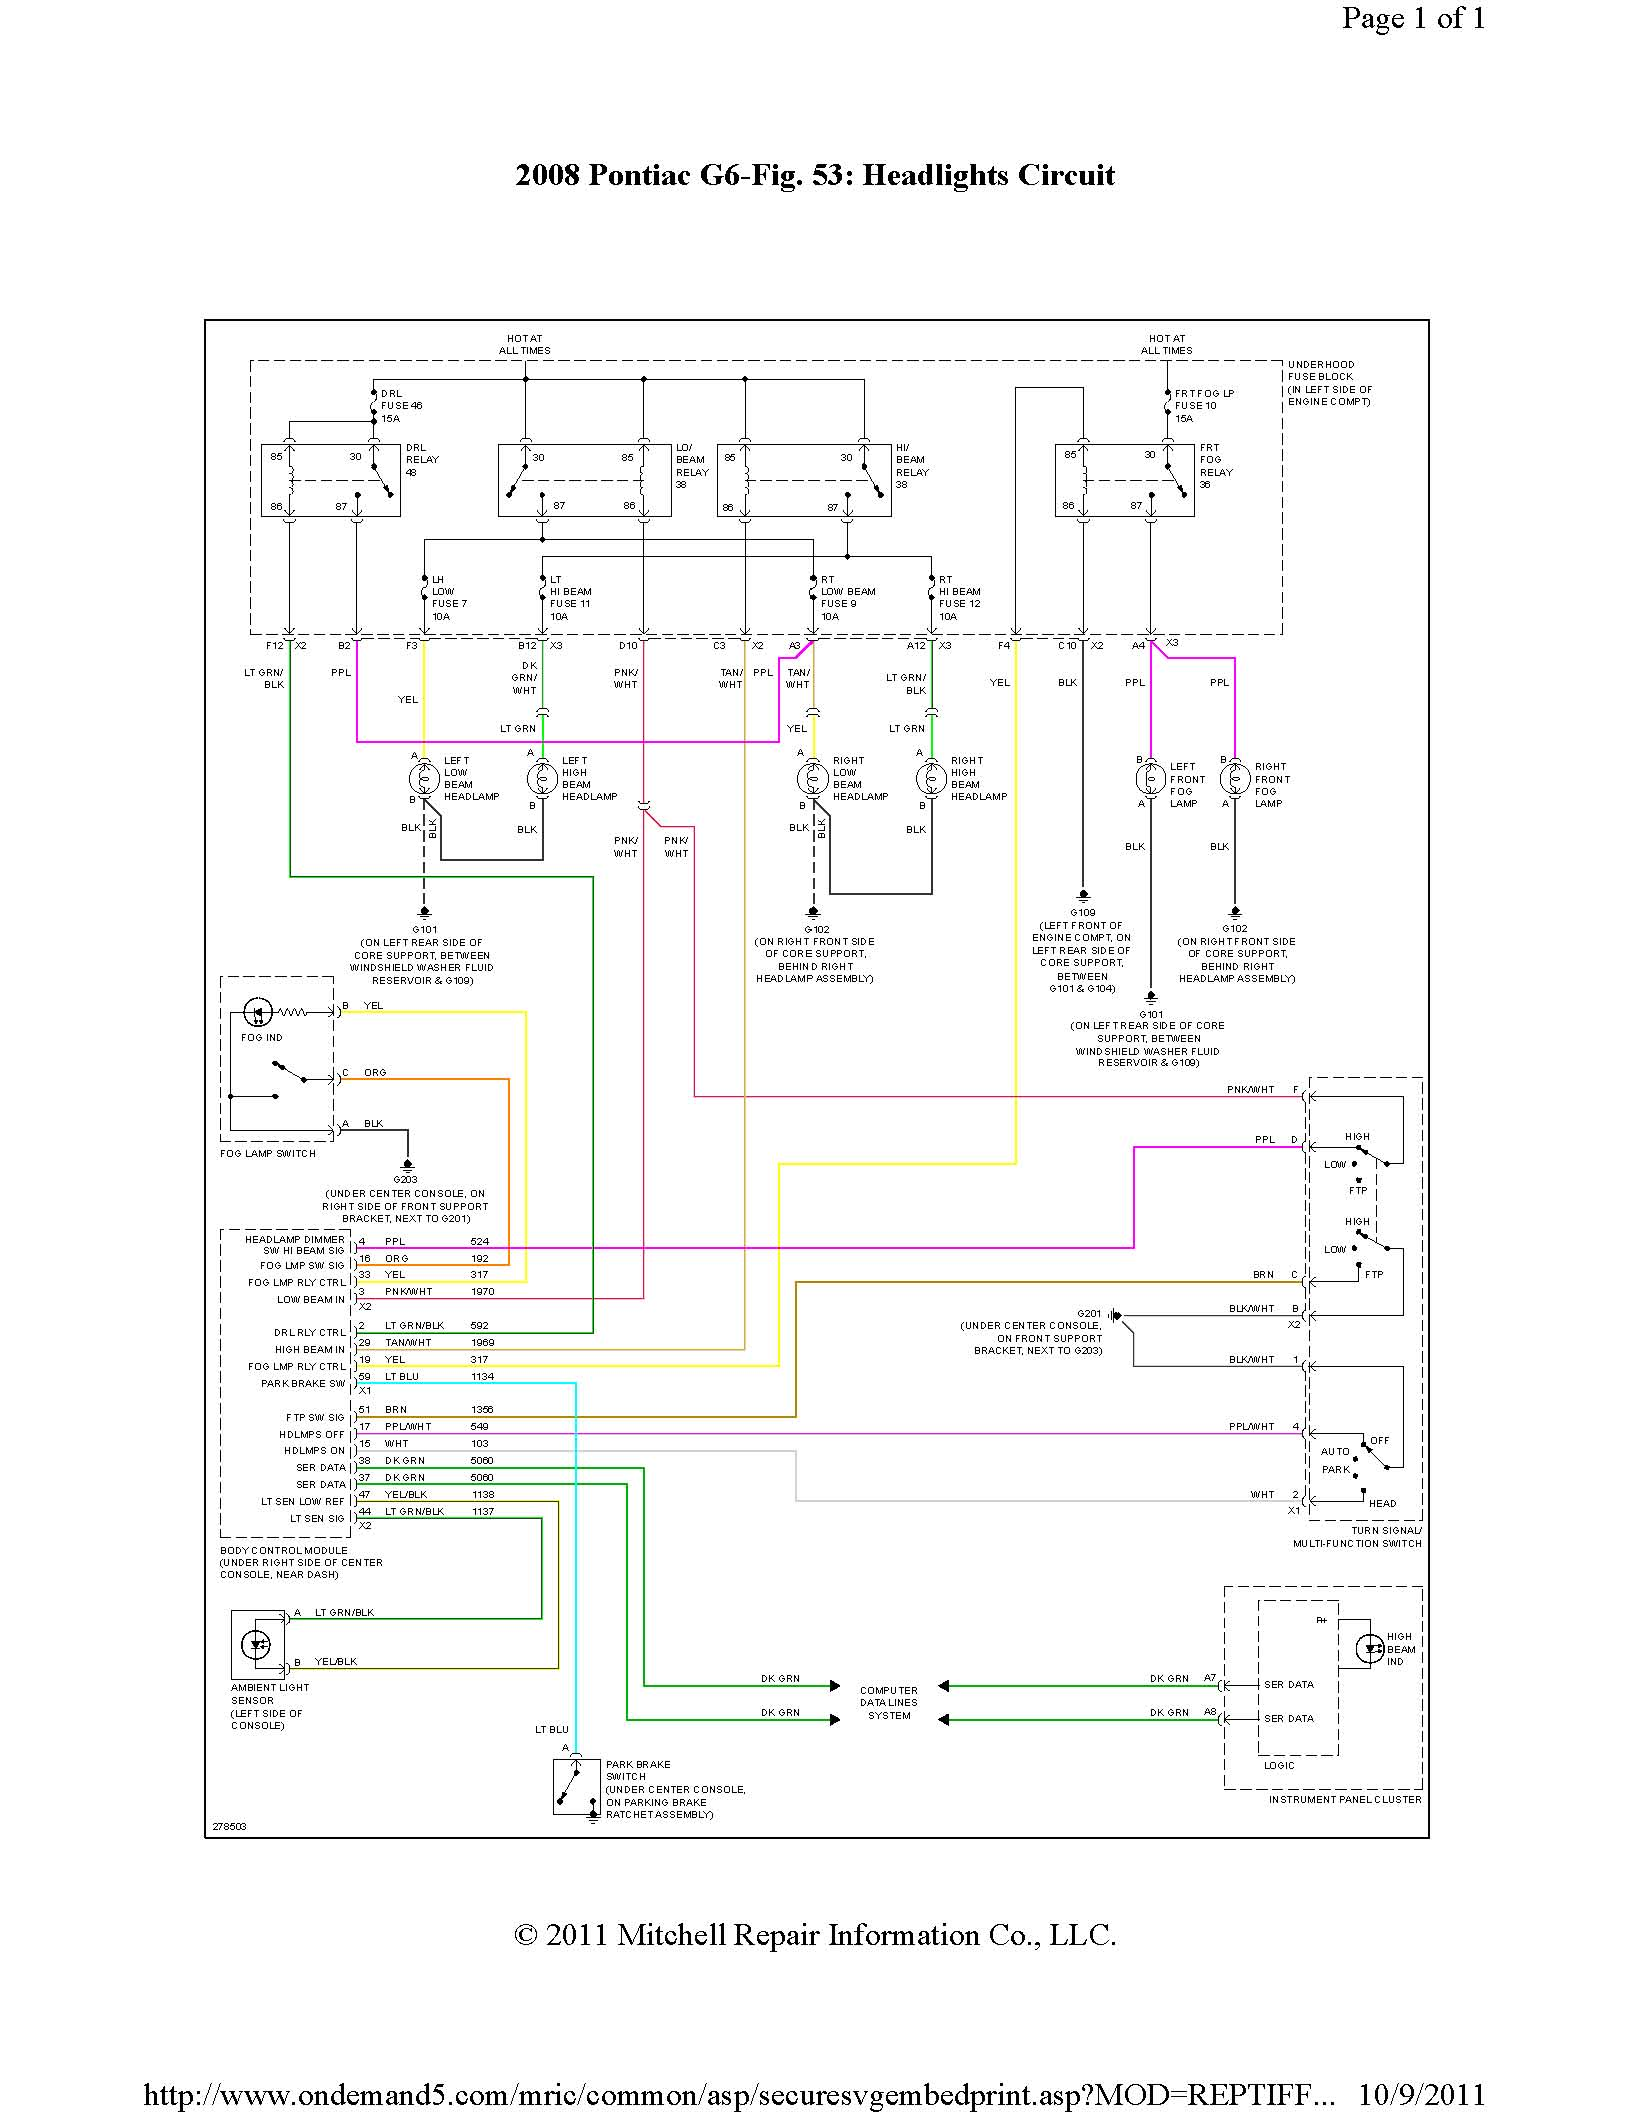 Wiring Diagram In Addition Pontiac G6 Monsoon Wiring Diagram In